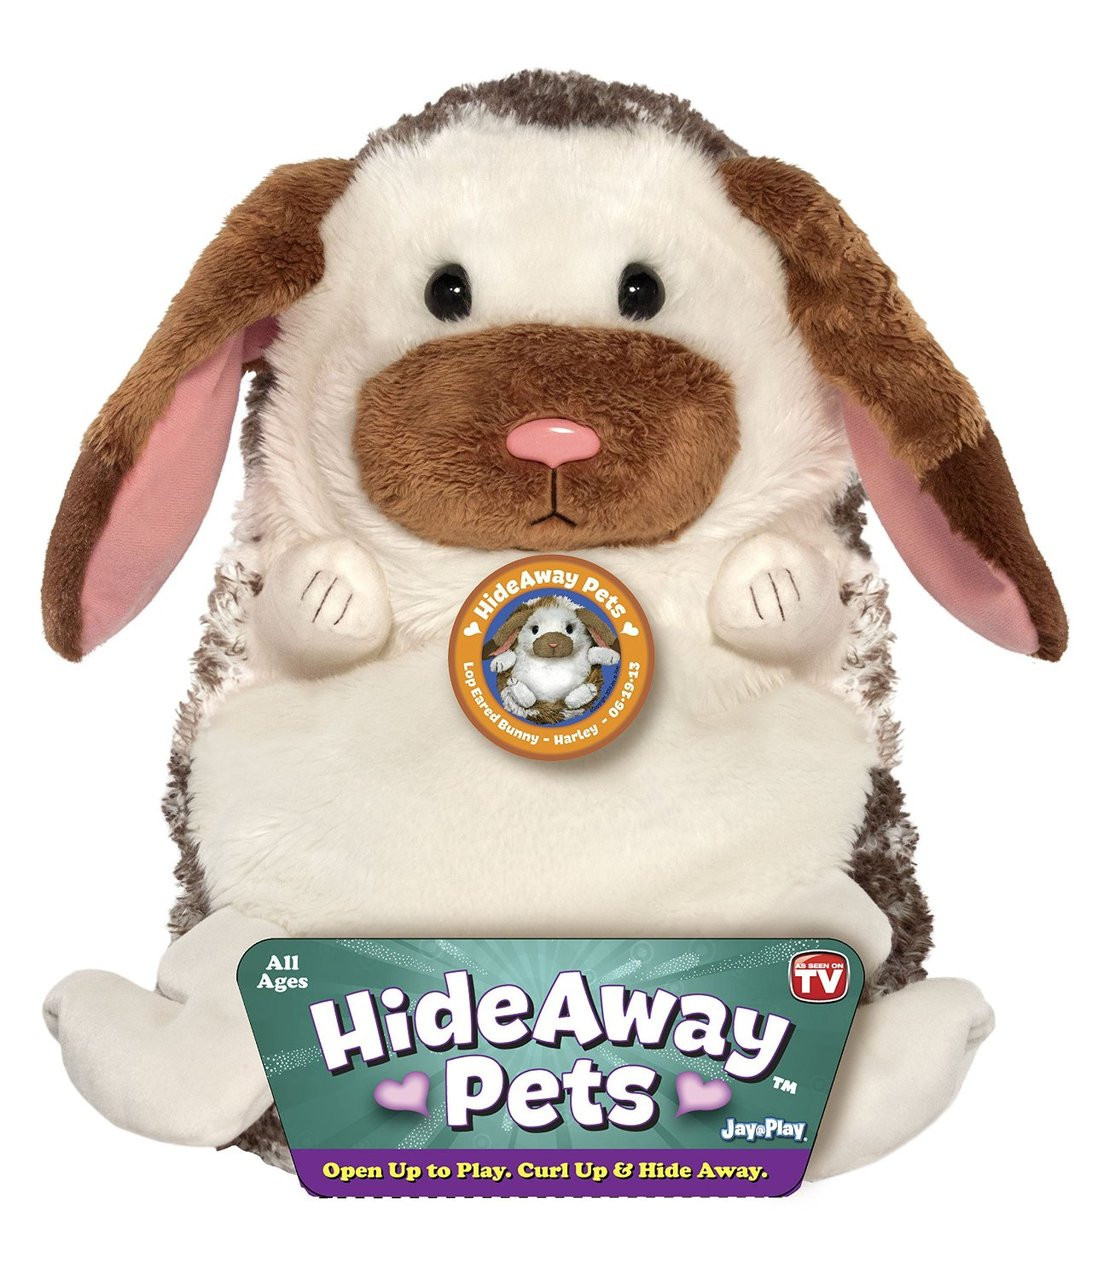 Hideaway Pets Lop Eared Bunny Plush Toy Animal 15in High Super